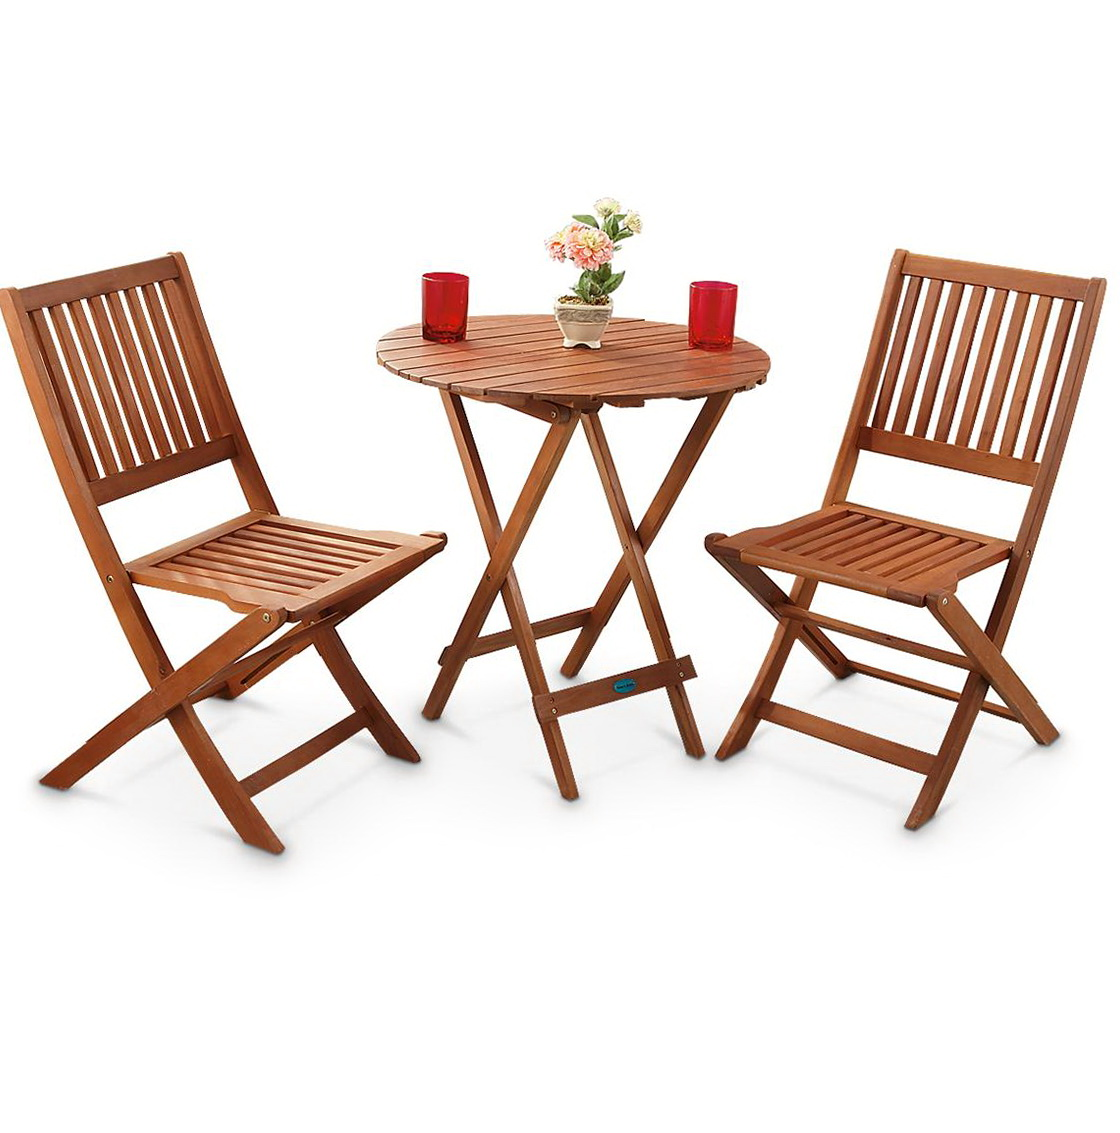 Folding Card Table And Chairs Set